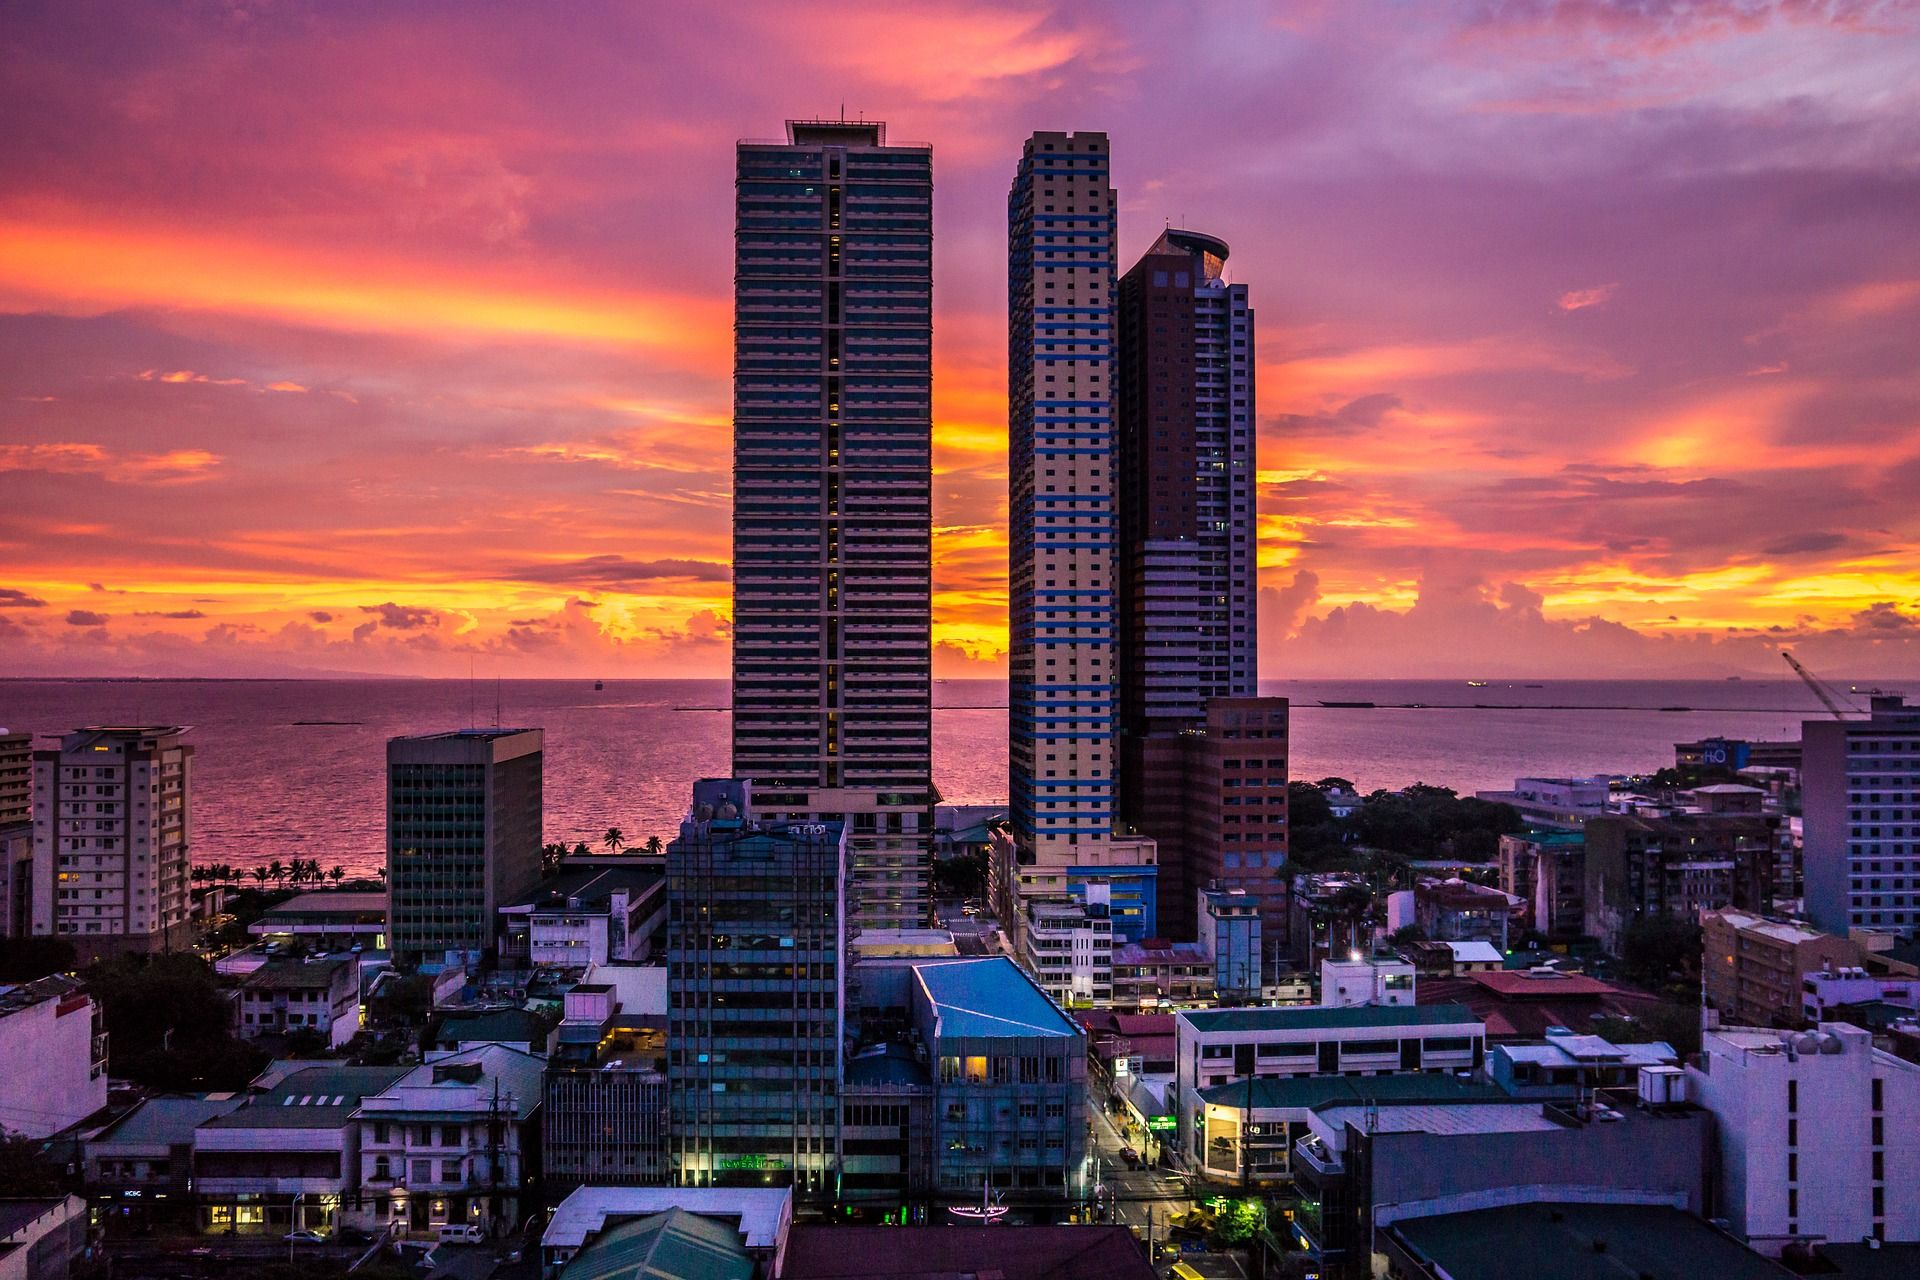 Image of high rises at sunset over Manila Bay